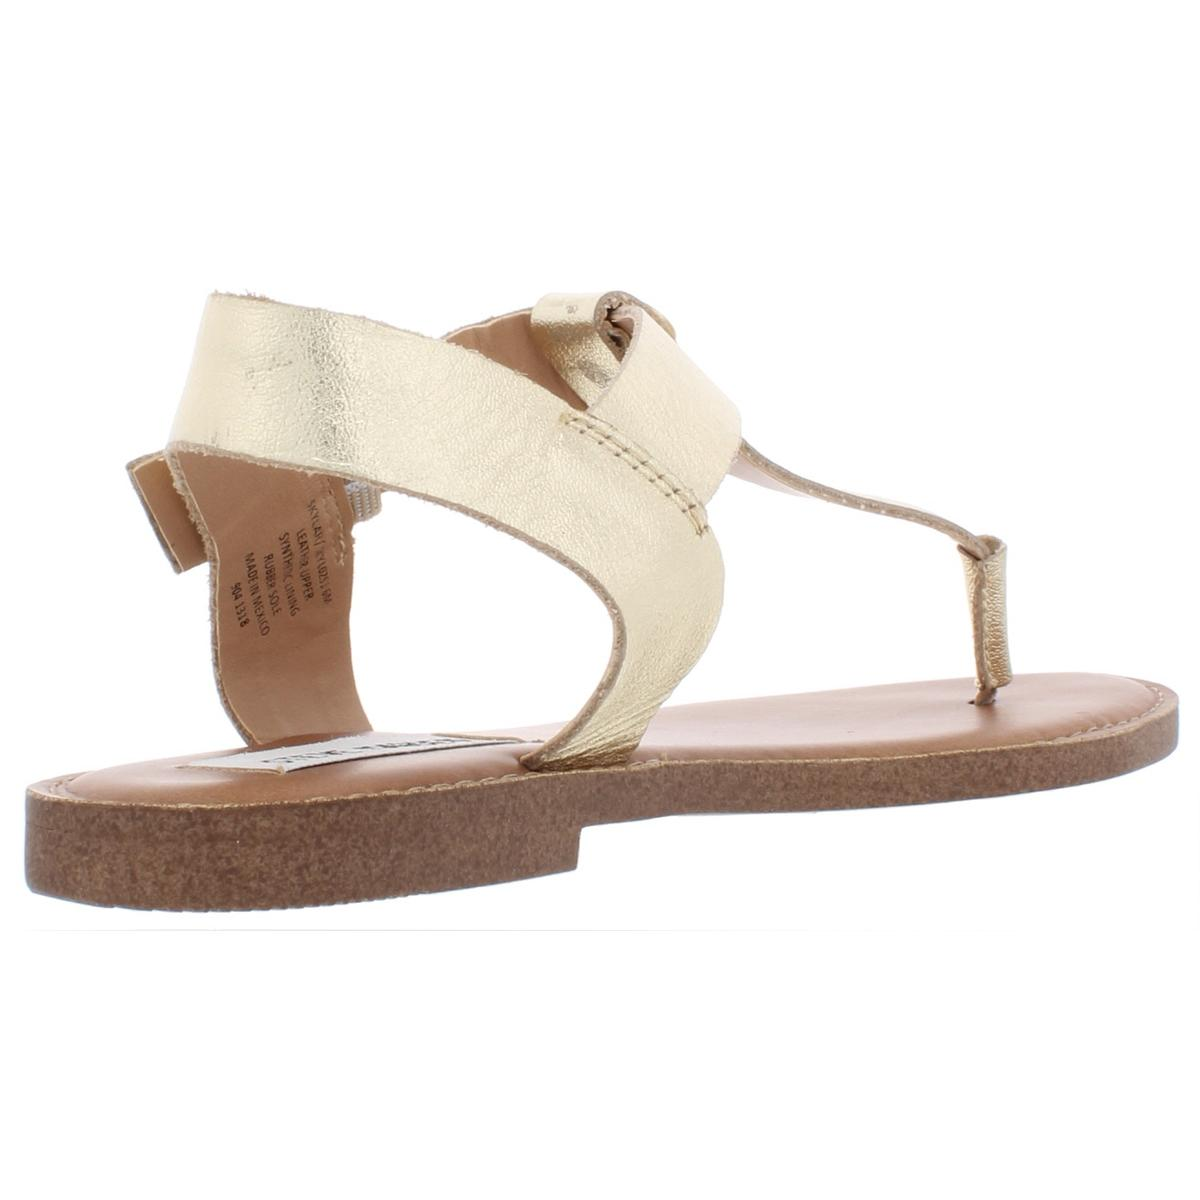 Steve-Madden-Womens-Skylar-Leather-Flats-Thong-T-Strap-Sandals-Shoes-BHFO-6308 thumbnail 6